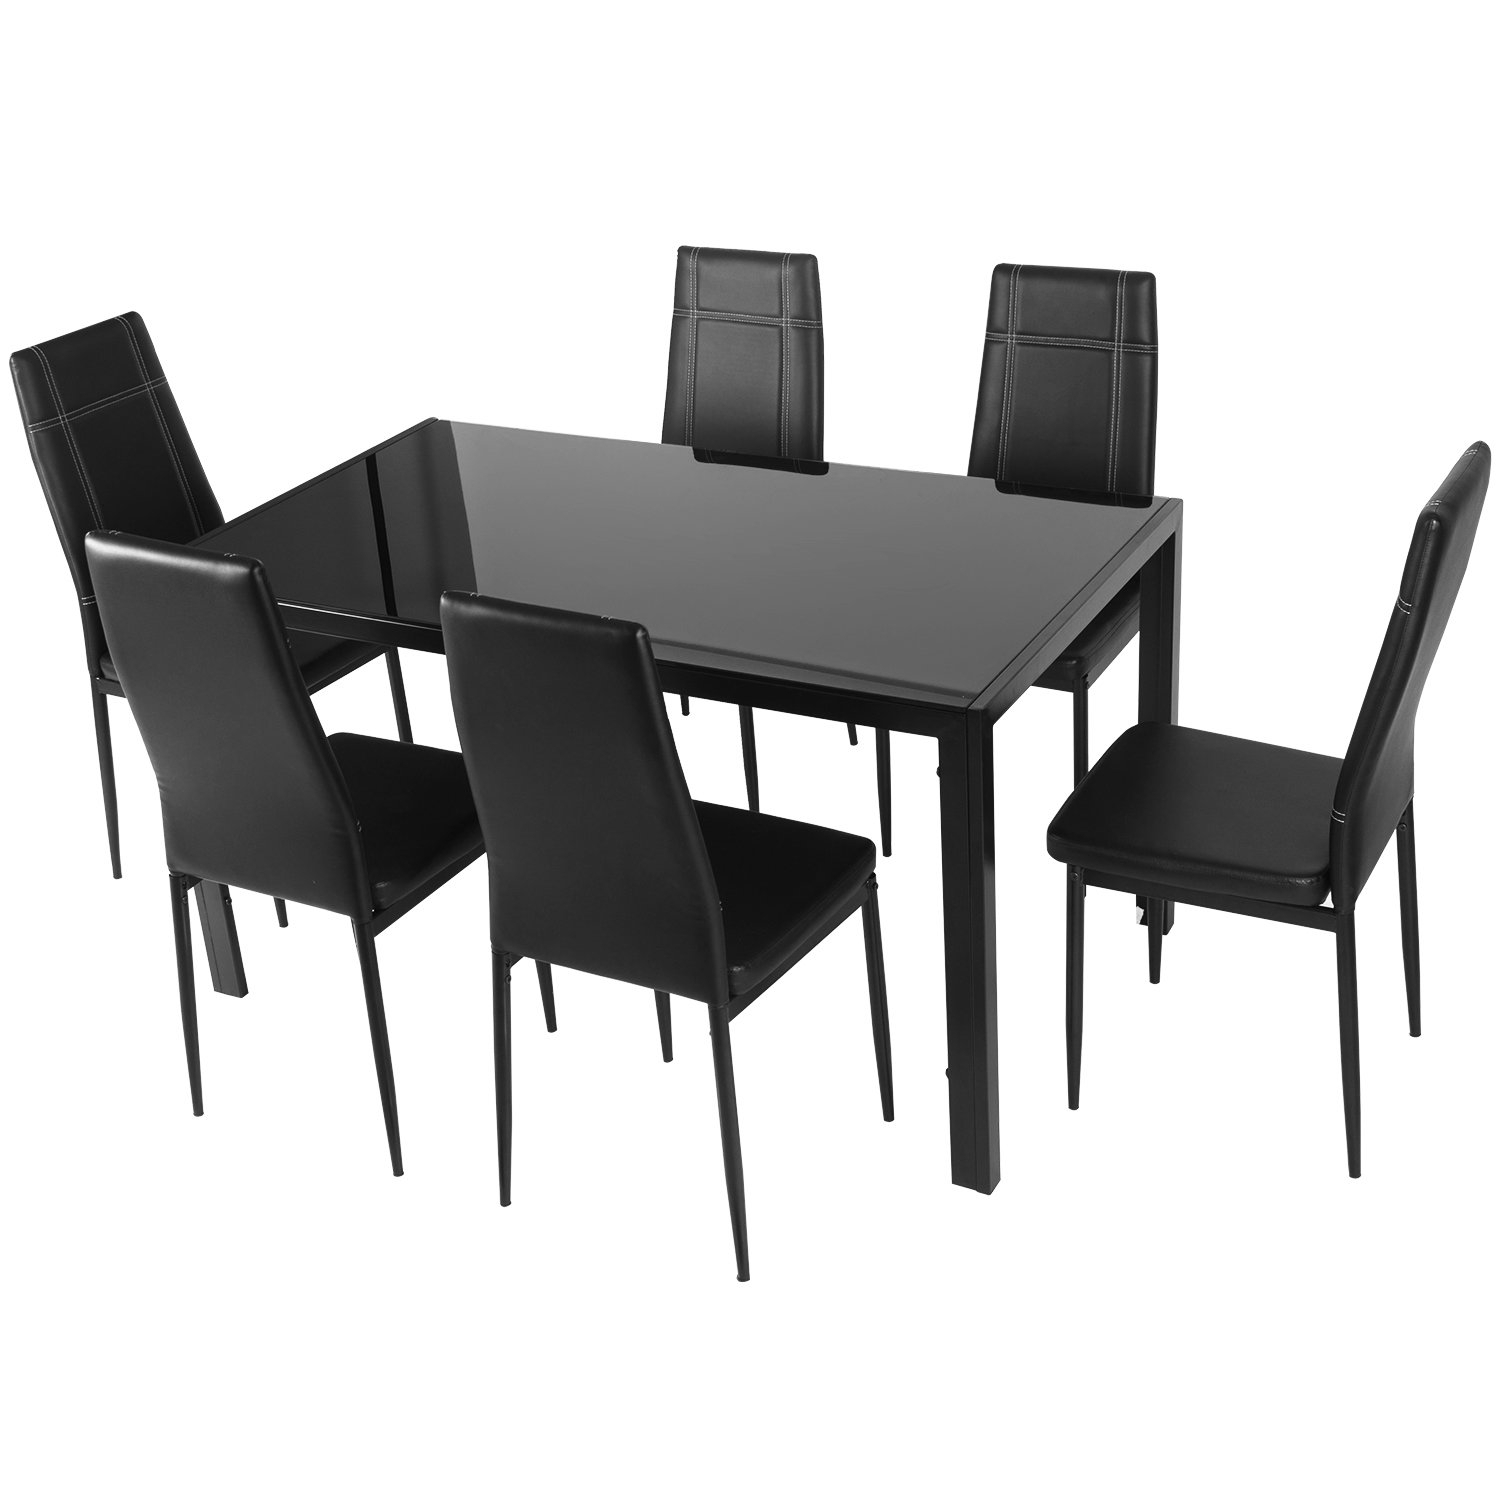 Maynard 7 Piece Dining Set Inside 2018 Frida 3 Piece Dining Table Sets (View 20 of 20)